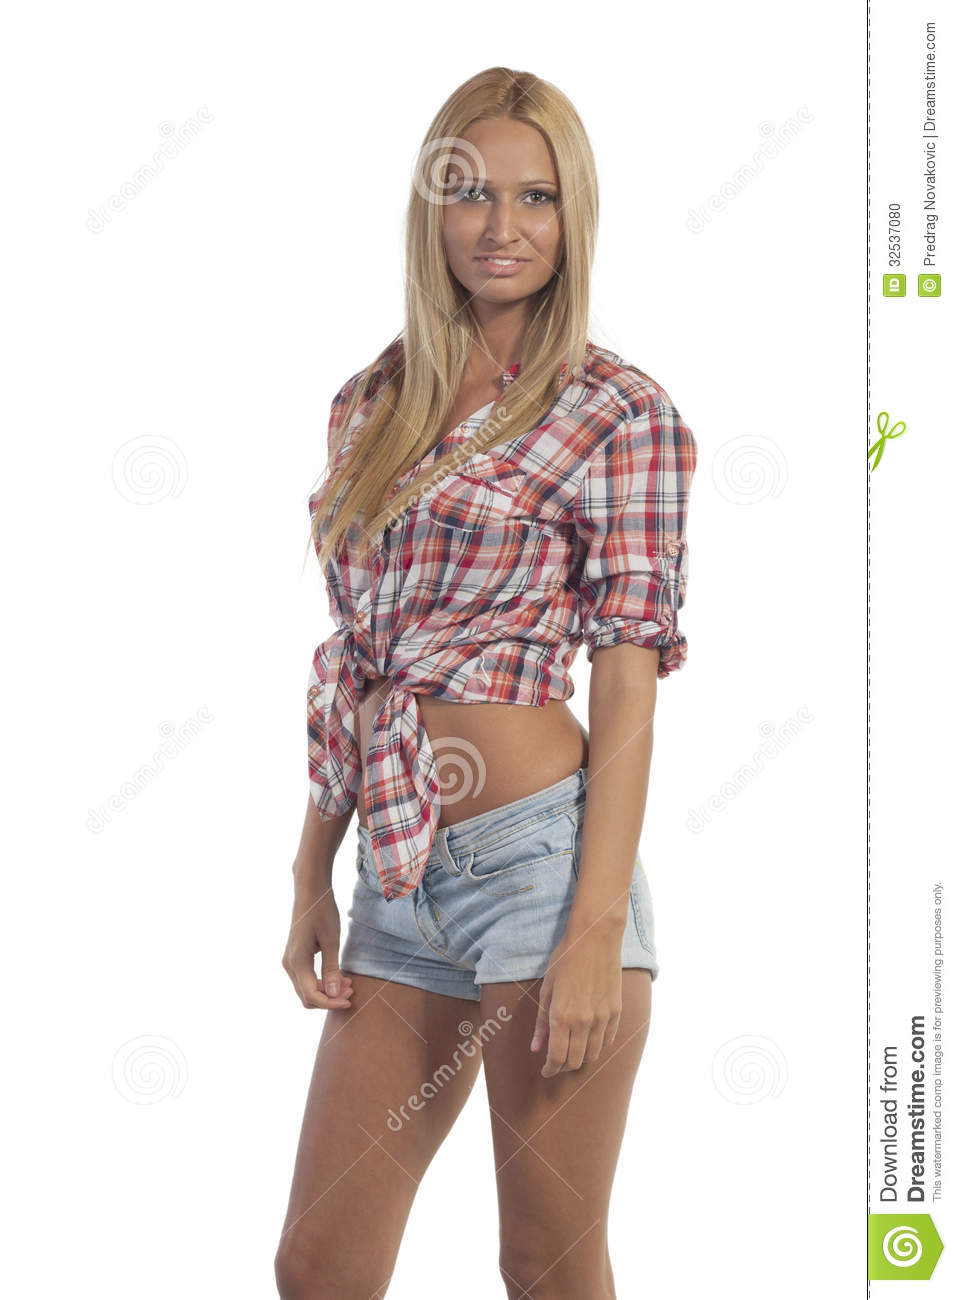 Teen shorts young jean